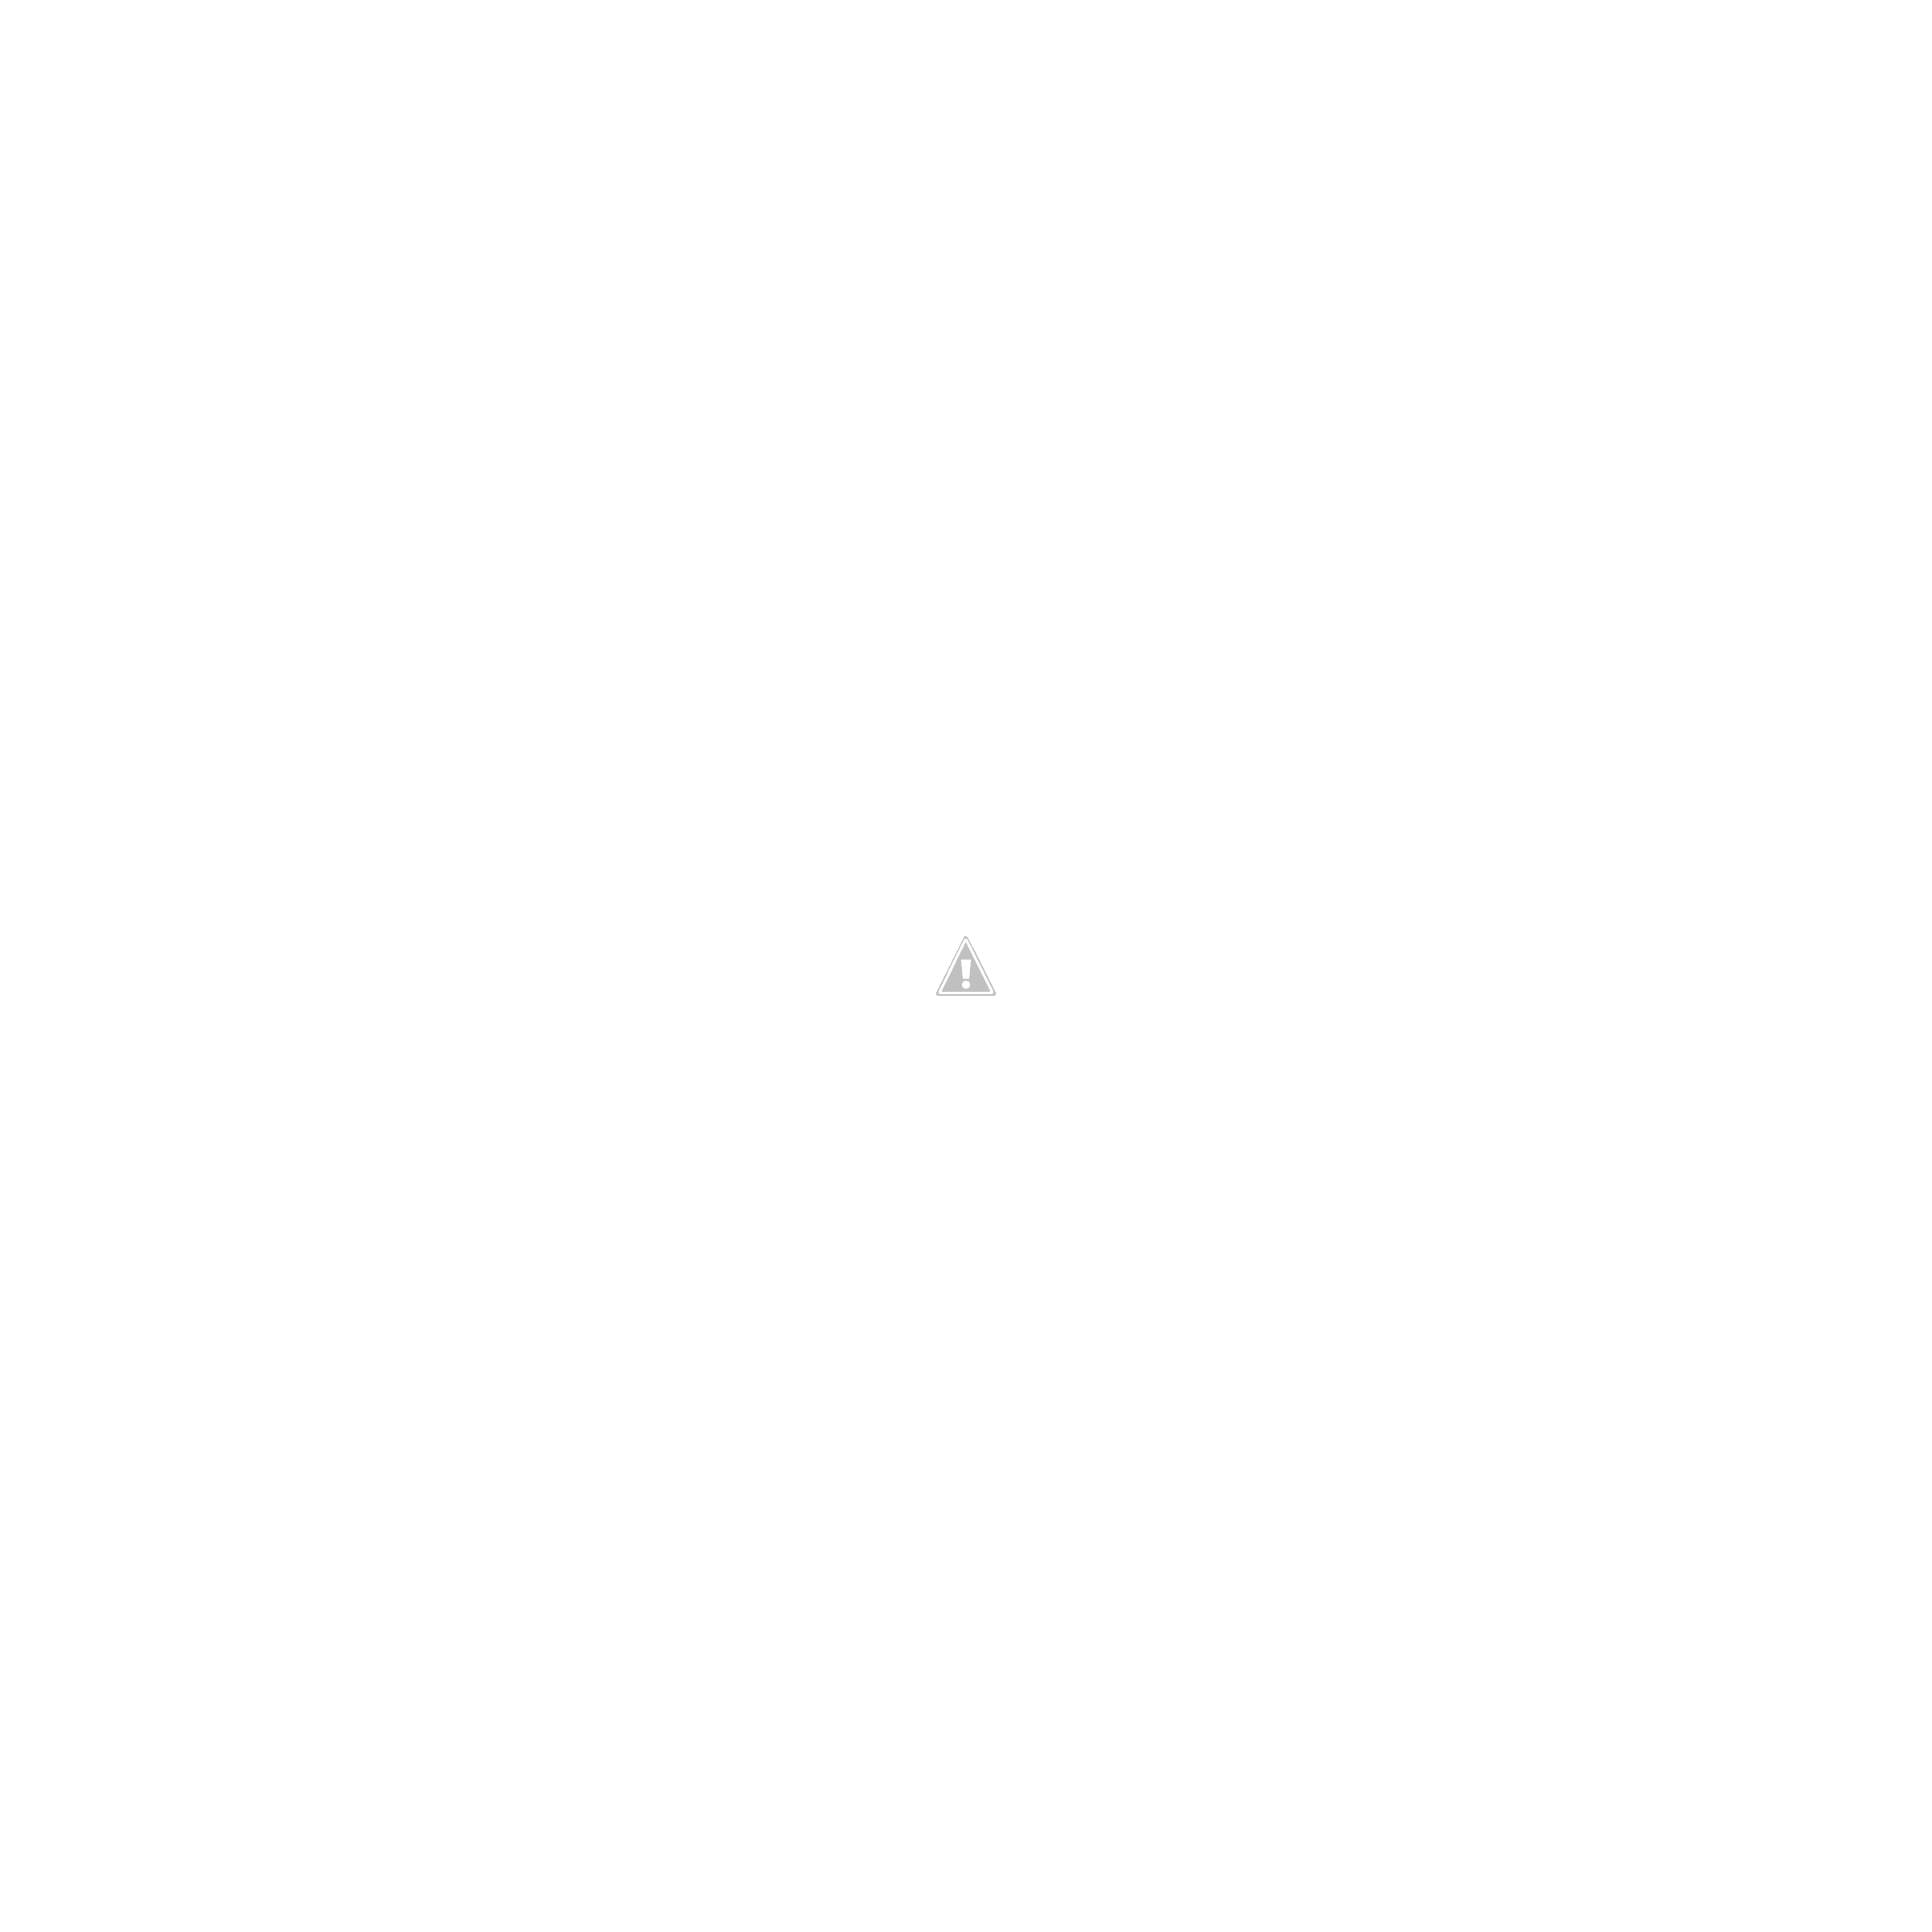 After the breaker panel replacement in Des Moines done by Integra Electrical